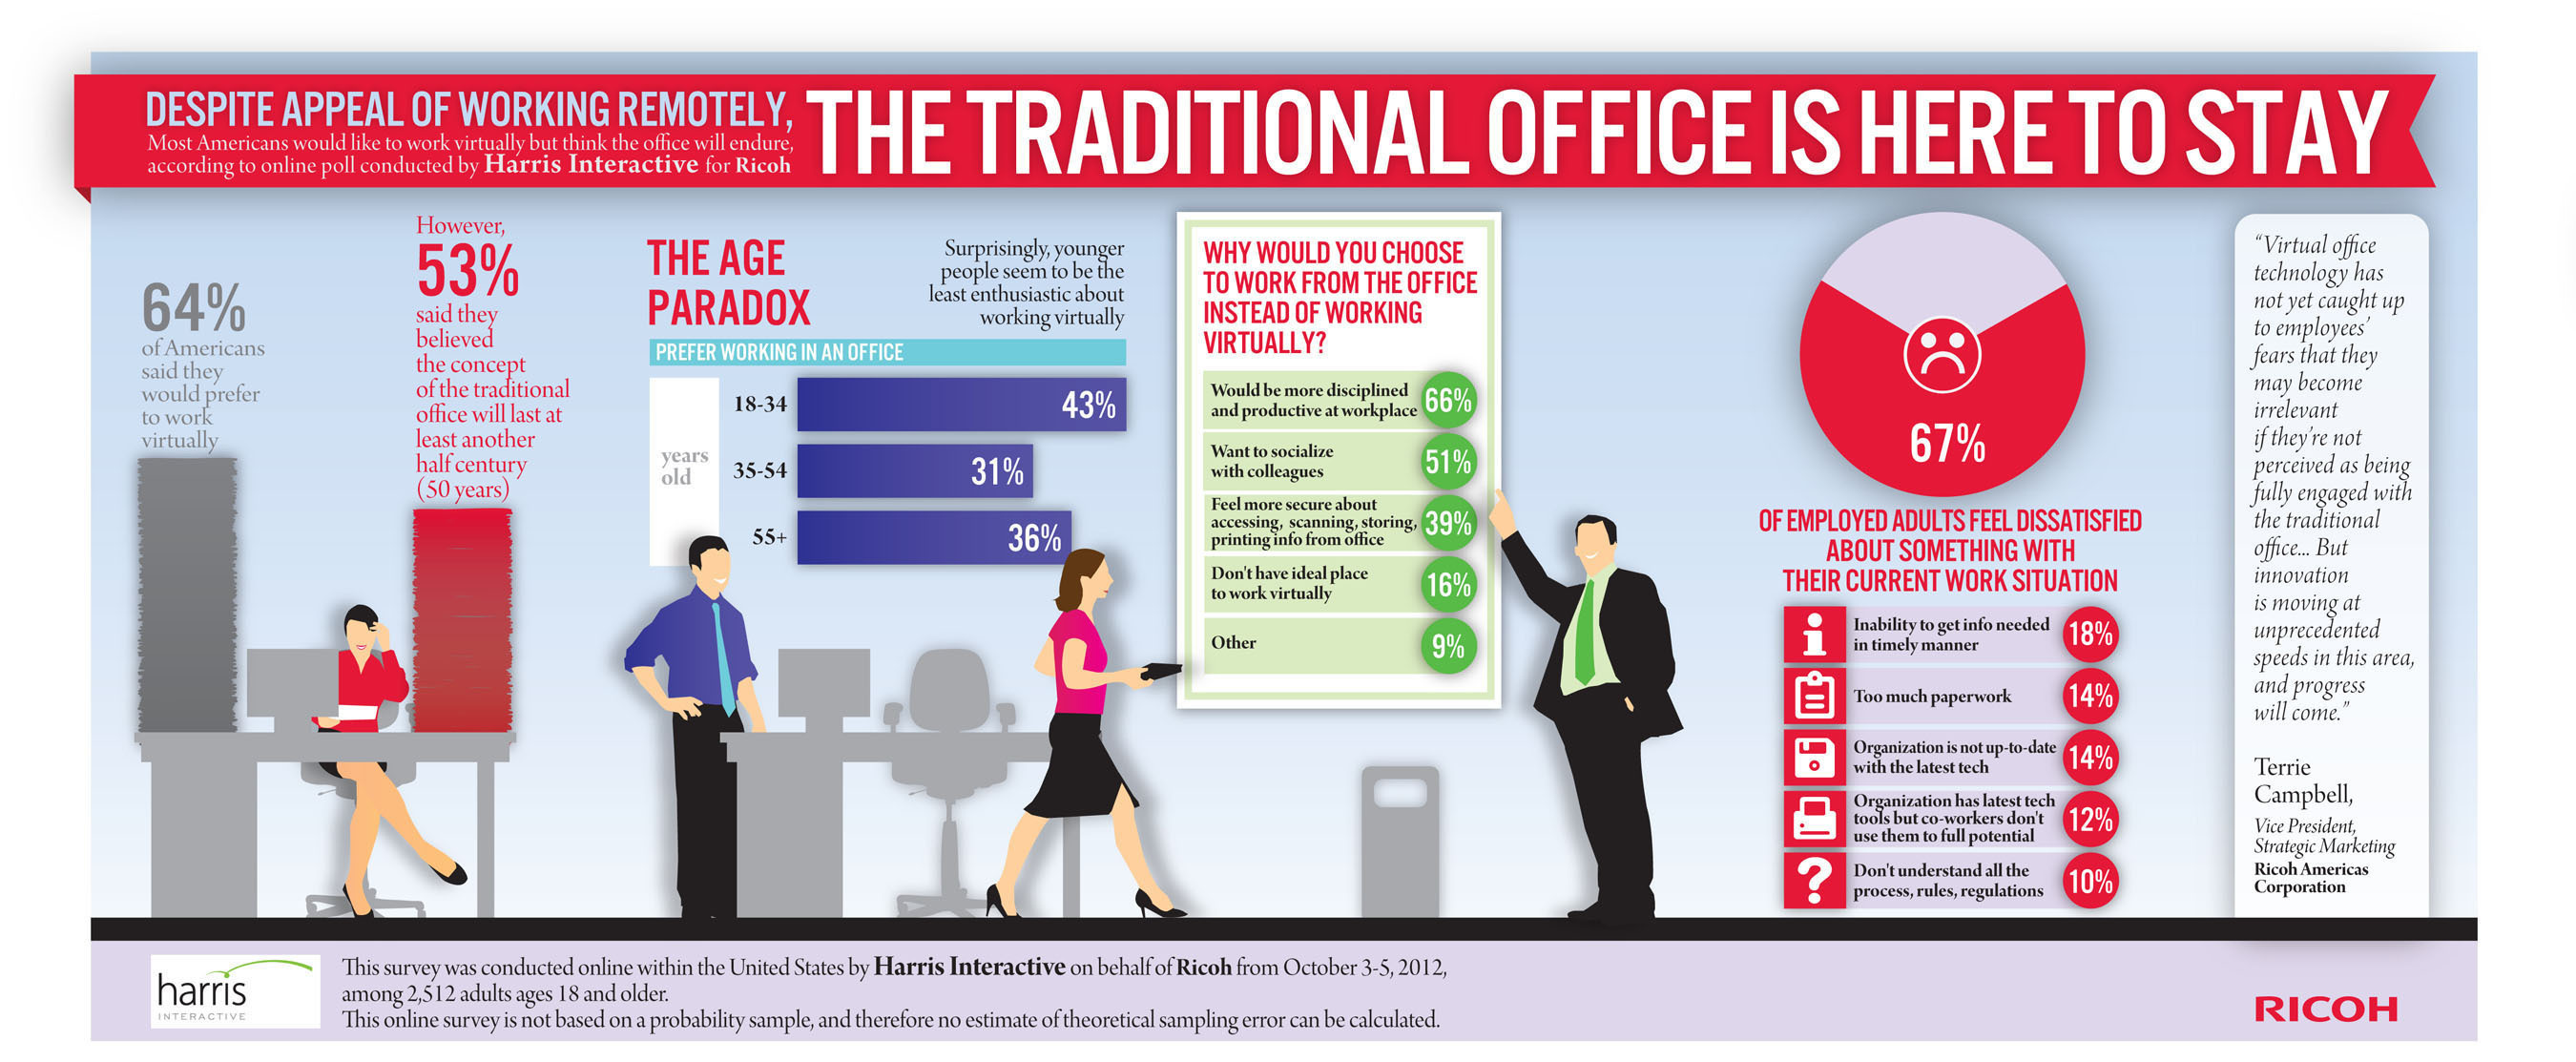 Will the traditional office exist in 50 years? Ricoh survey asks